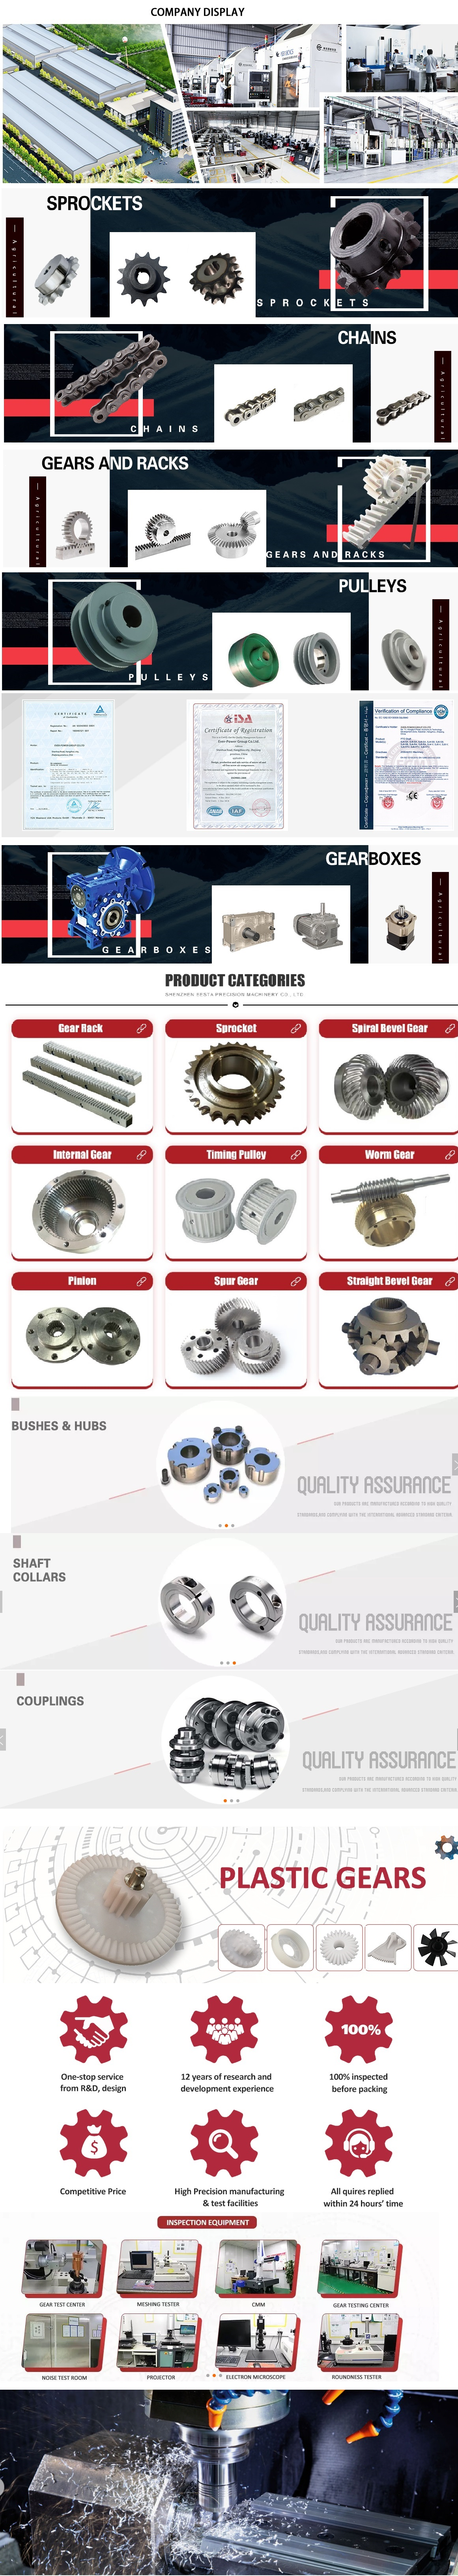 Best China manufacturer & factory factory  in Gaoxiong China, Taiwan Province of China  manufacturer for  Irregular Sized Power Transmission Gear Shaft PTO Gear made from Alloy Metal for Vehicles  Tractors With high quality best price